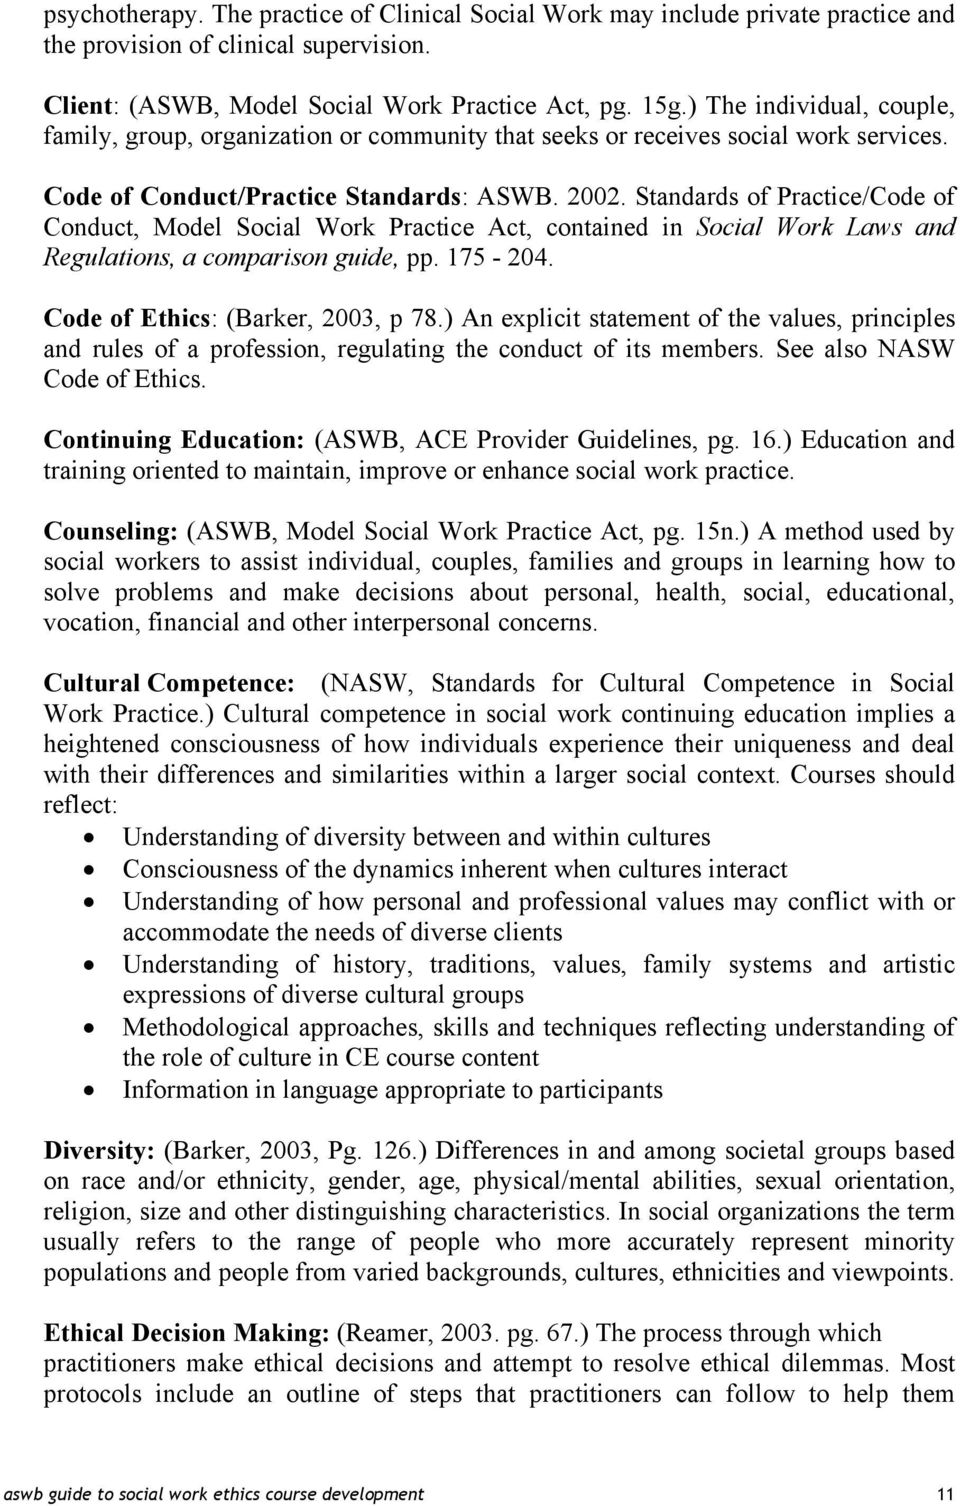 Standards of Practice/Code of Conduct, Model Social Work Practice Act, contained in Social Work Laws and Regulations, a comparison guide, pp. 175-204. Code of Ethics: (Barker, 2003, p 78.